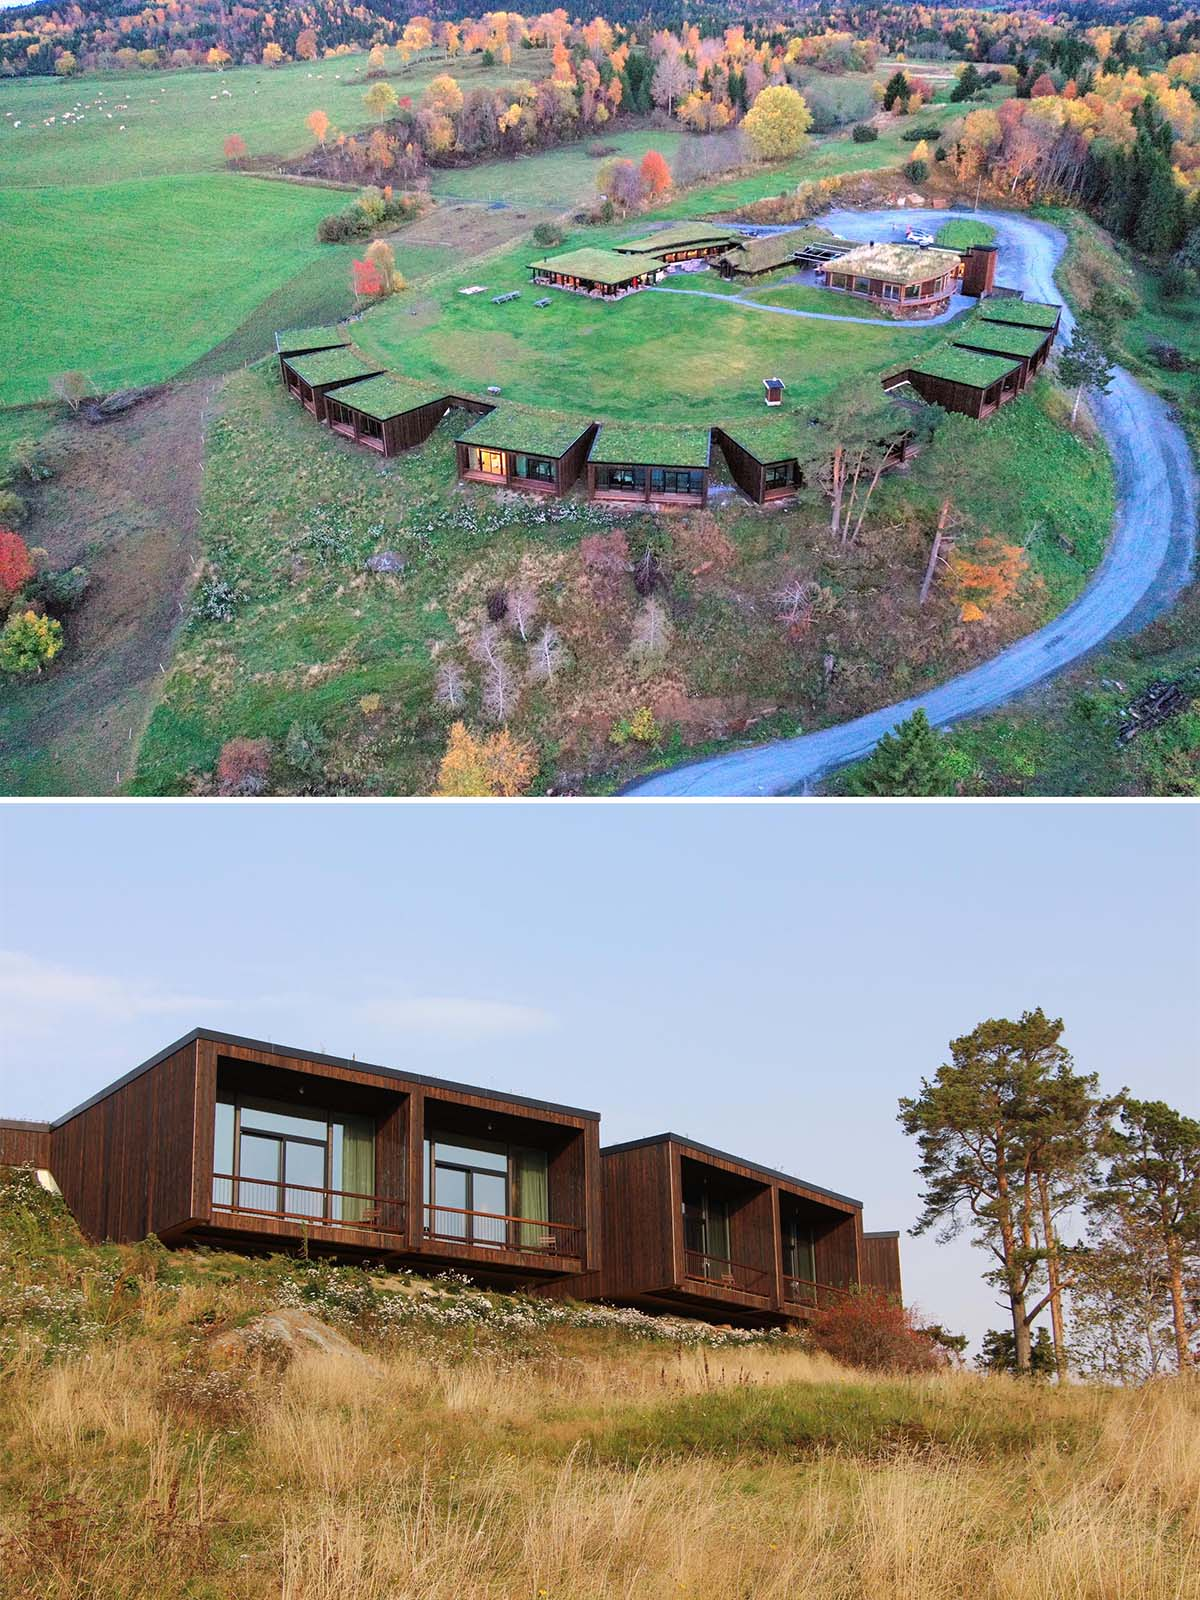 The Øyna Cultural Landscape Hotel in Norway blends into the hillside.